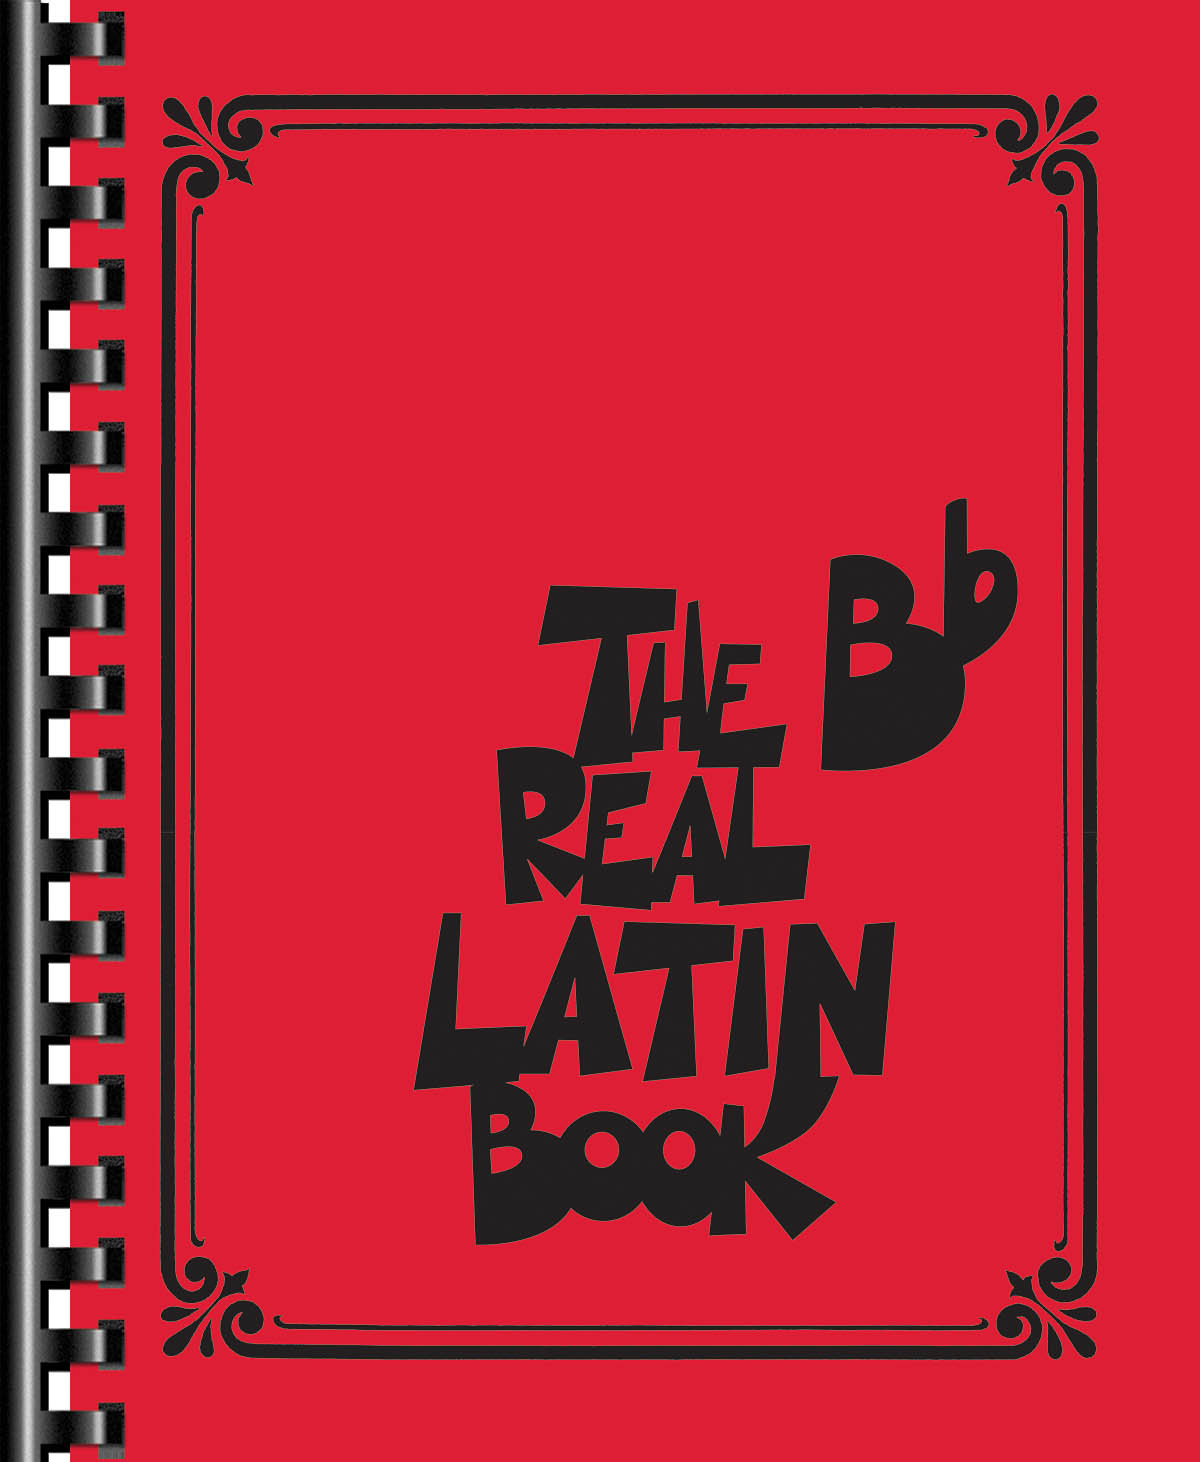 Real bb version book latin